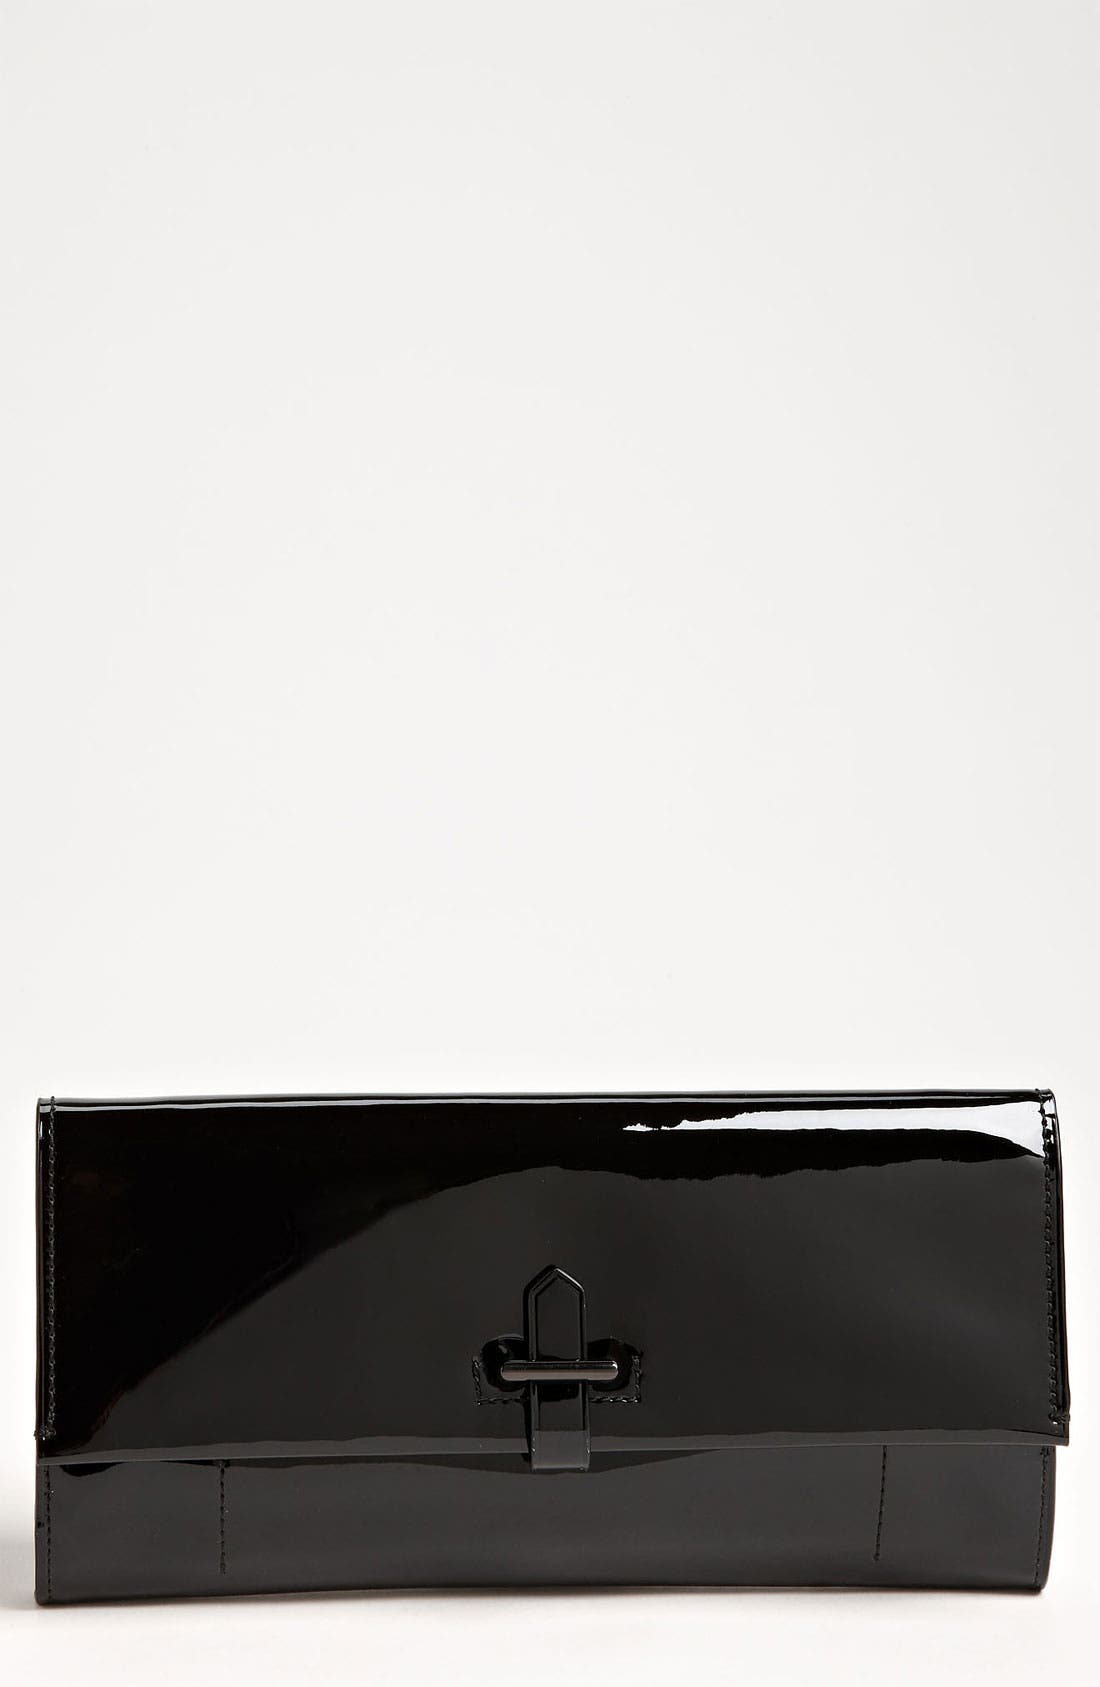 Main Image - Reed Krakoff 'Standard' Patent Leather Clutch